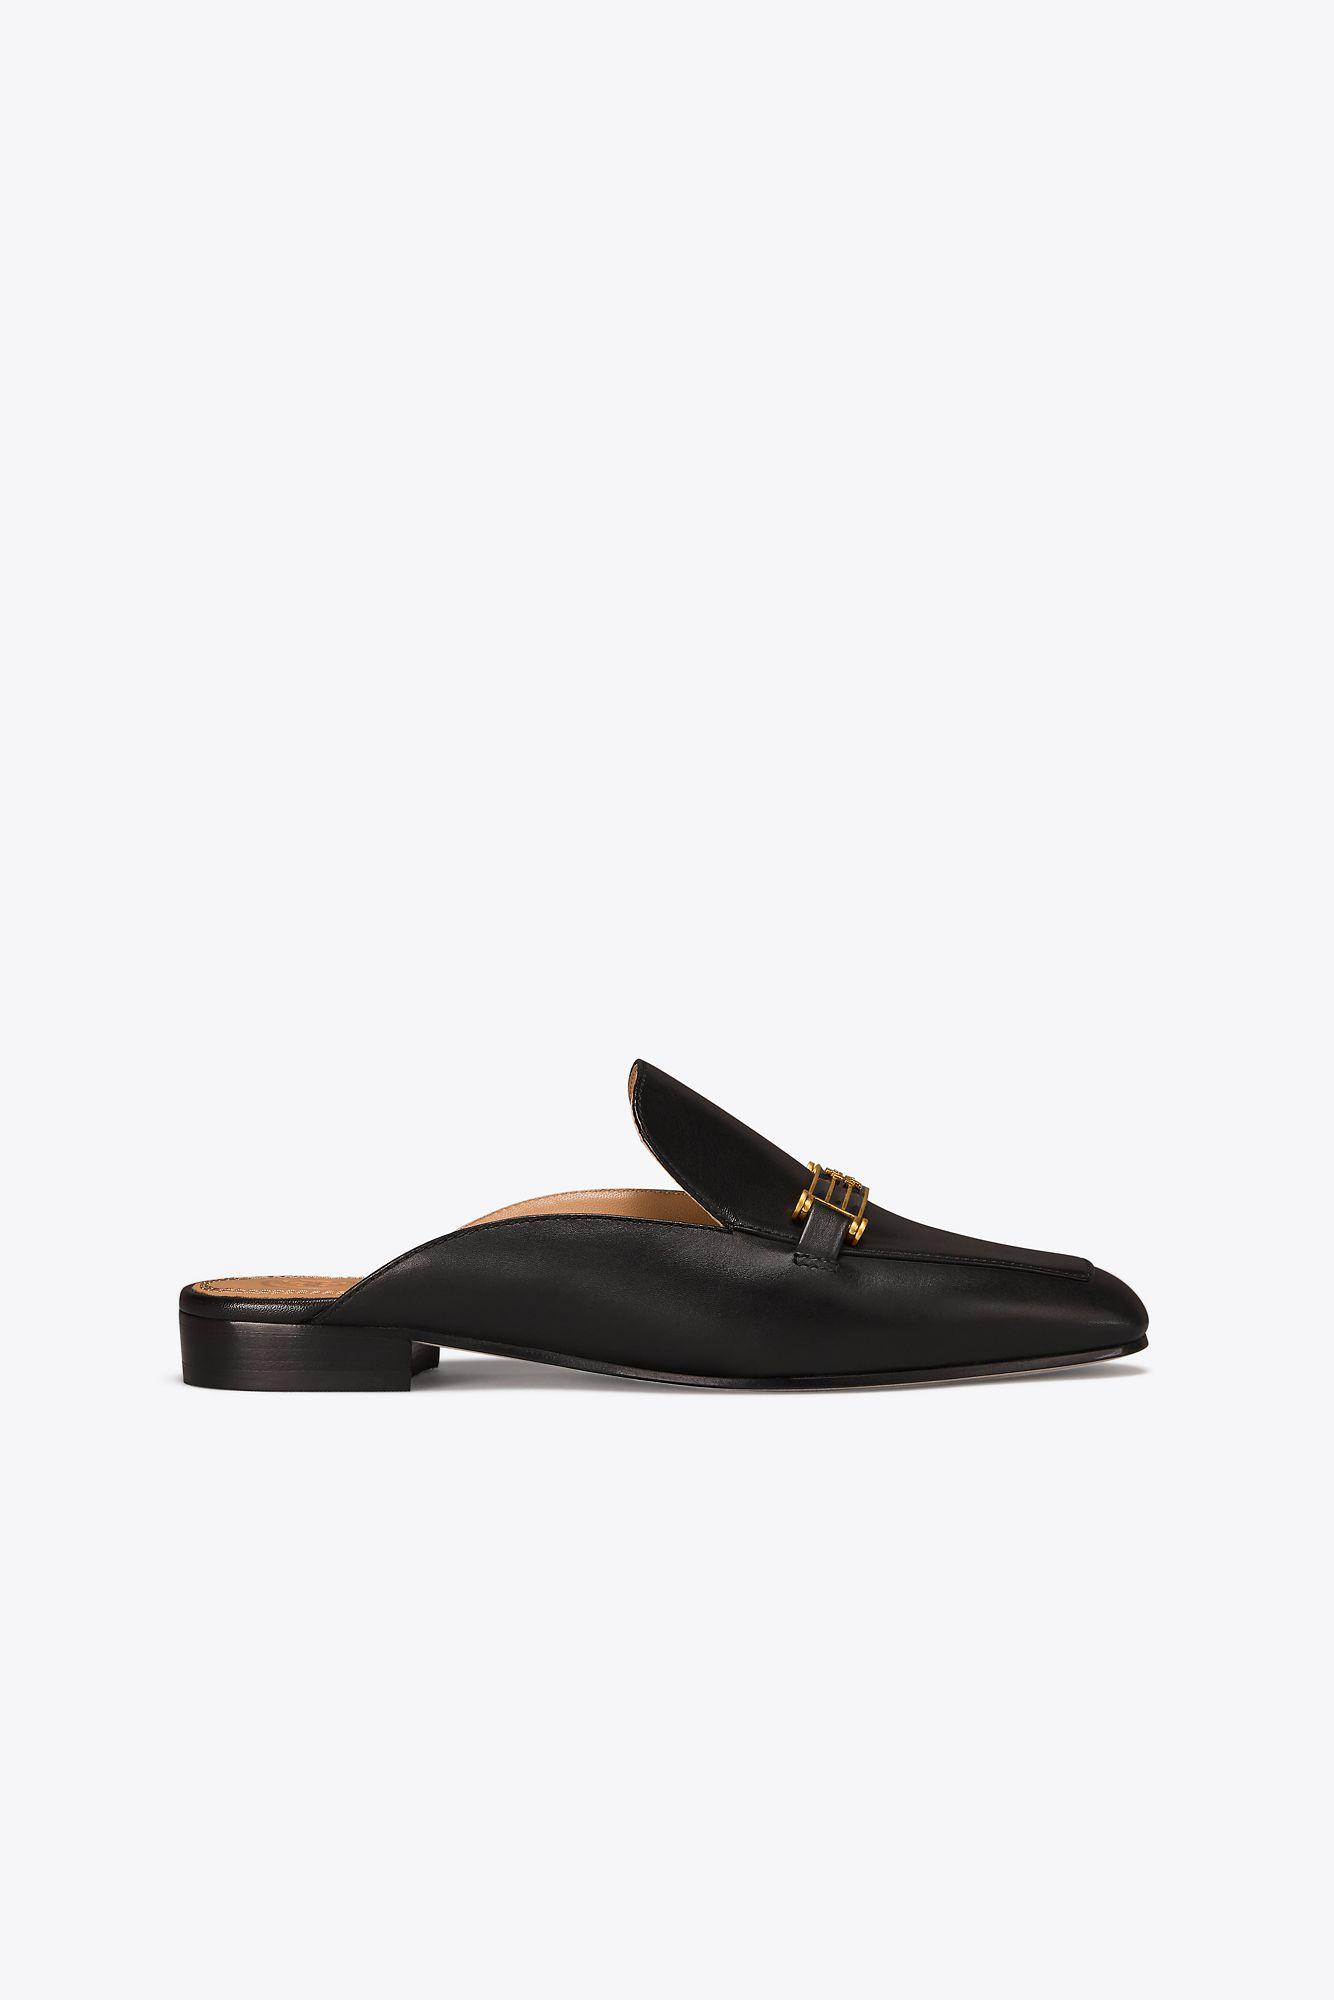 42bb193aff0 Lyst - Tory Burch Amelia Slippers in Black